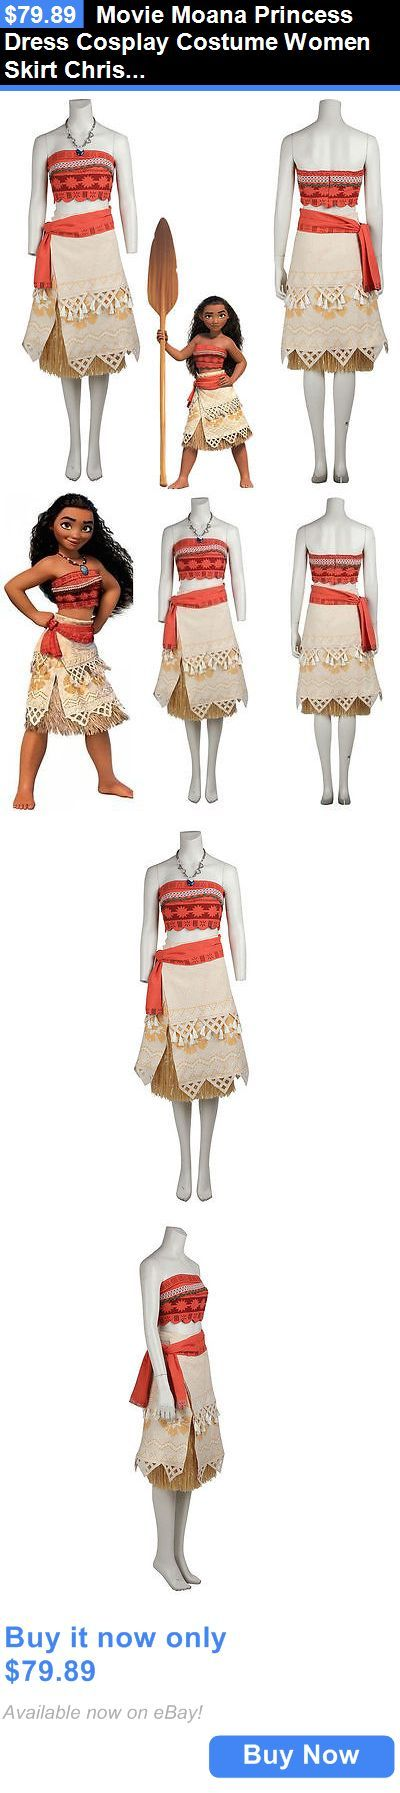 Nice Party Dresses Halloween Costumes Women: Movie Moana Princess Dress Cosplay Costume Women Skirt... Check more at http://mydress.gq/fashion/party-dresses-halloween-costumes-women-movie-moana-princess-dress-cosplay-costume-women-skirt/